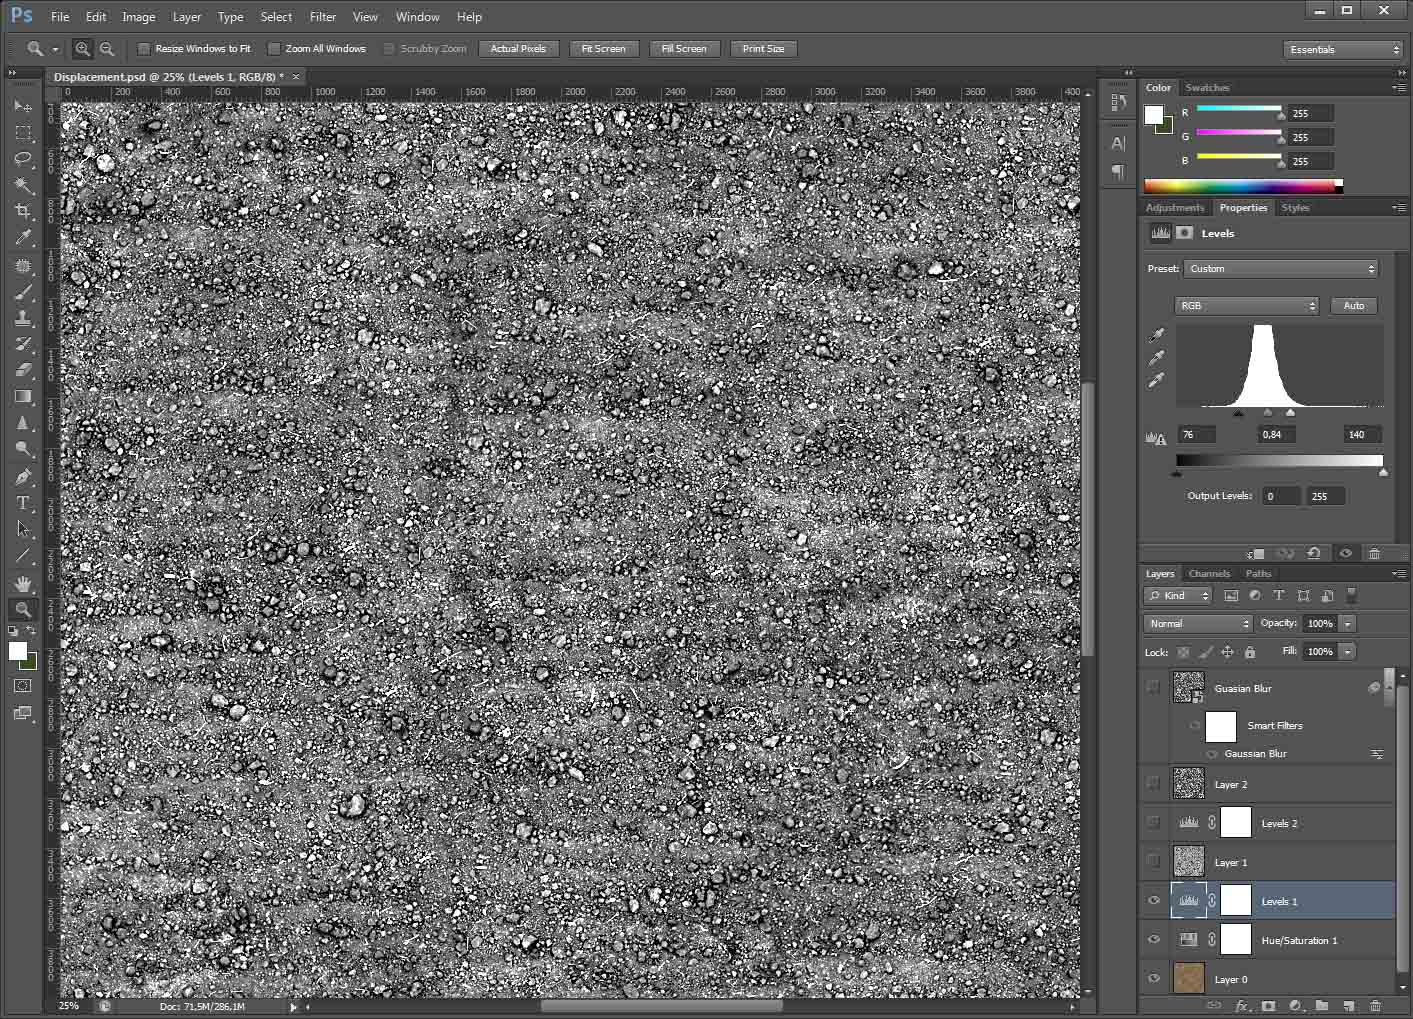 VWArtclub - Displacement Map In Photoshop on